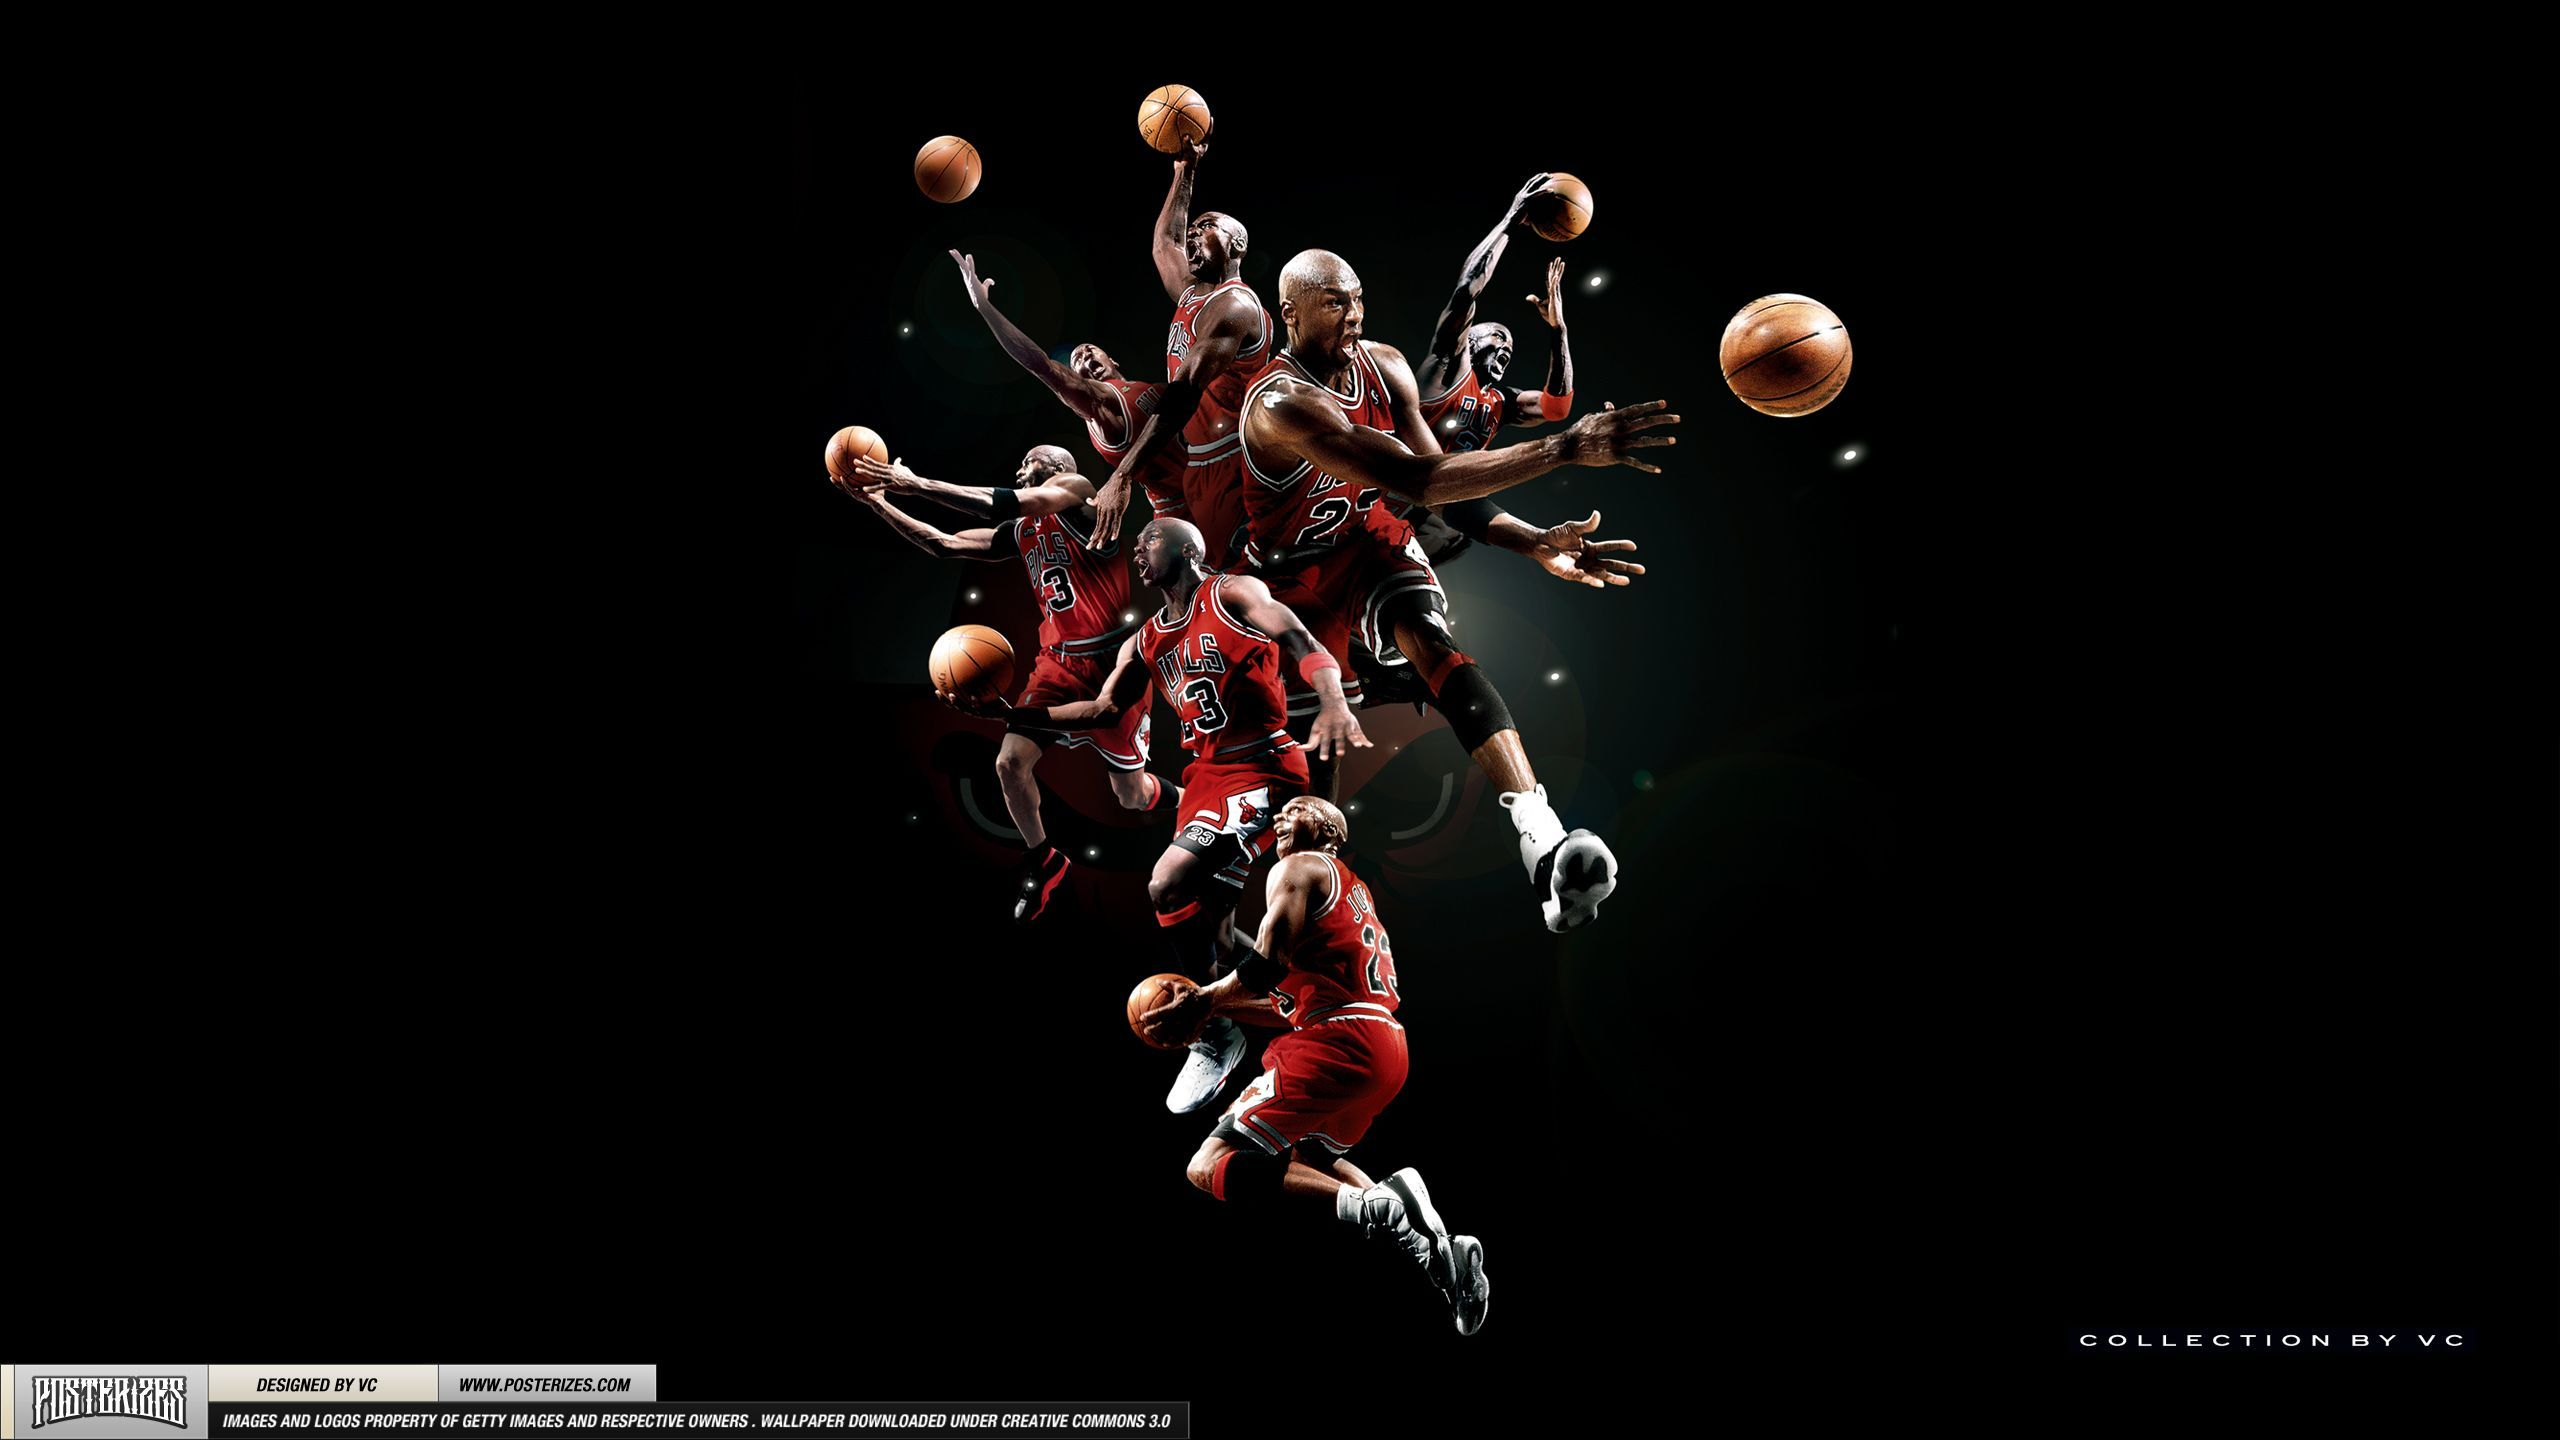 Jordan Wallpapers HD download 2560x1440